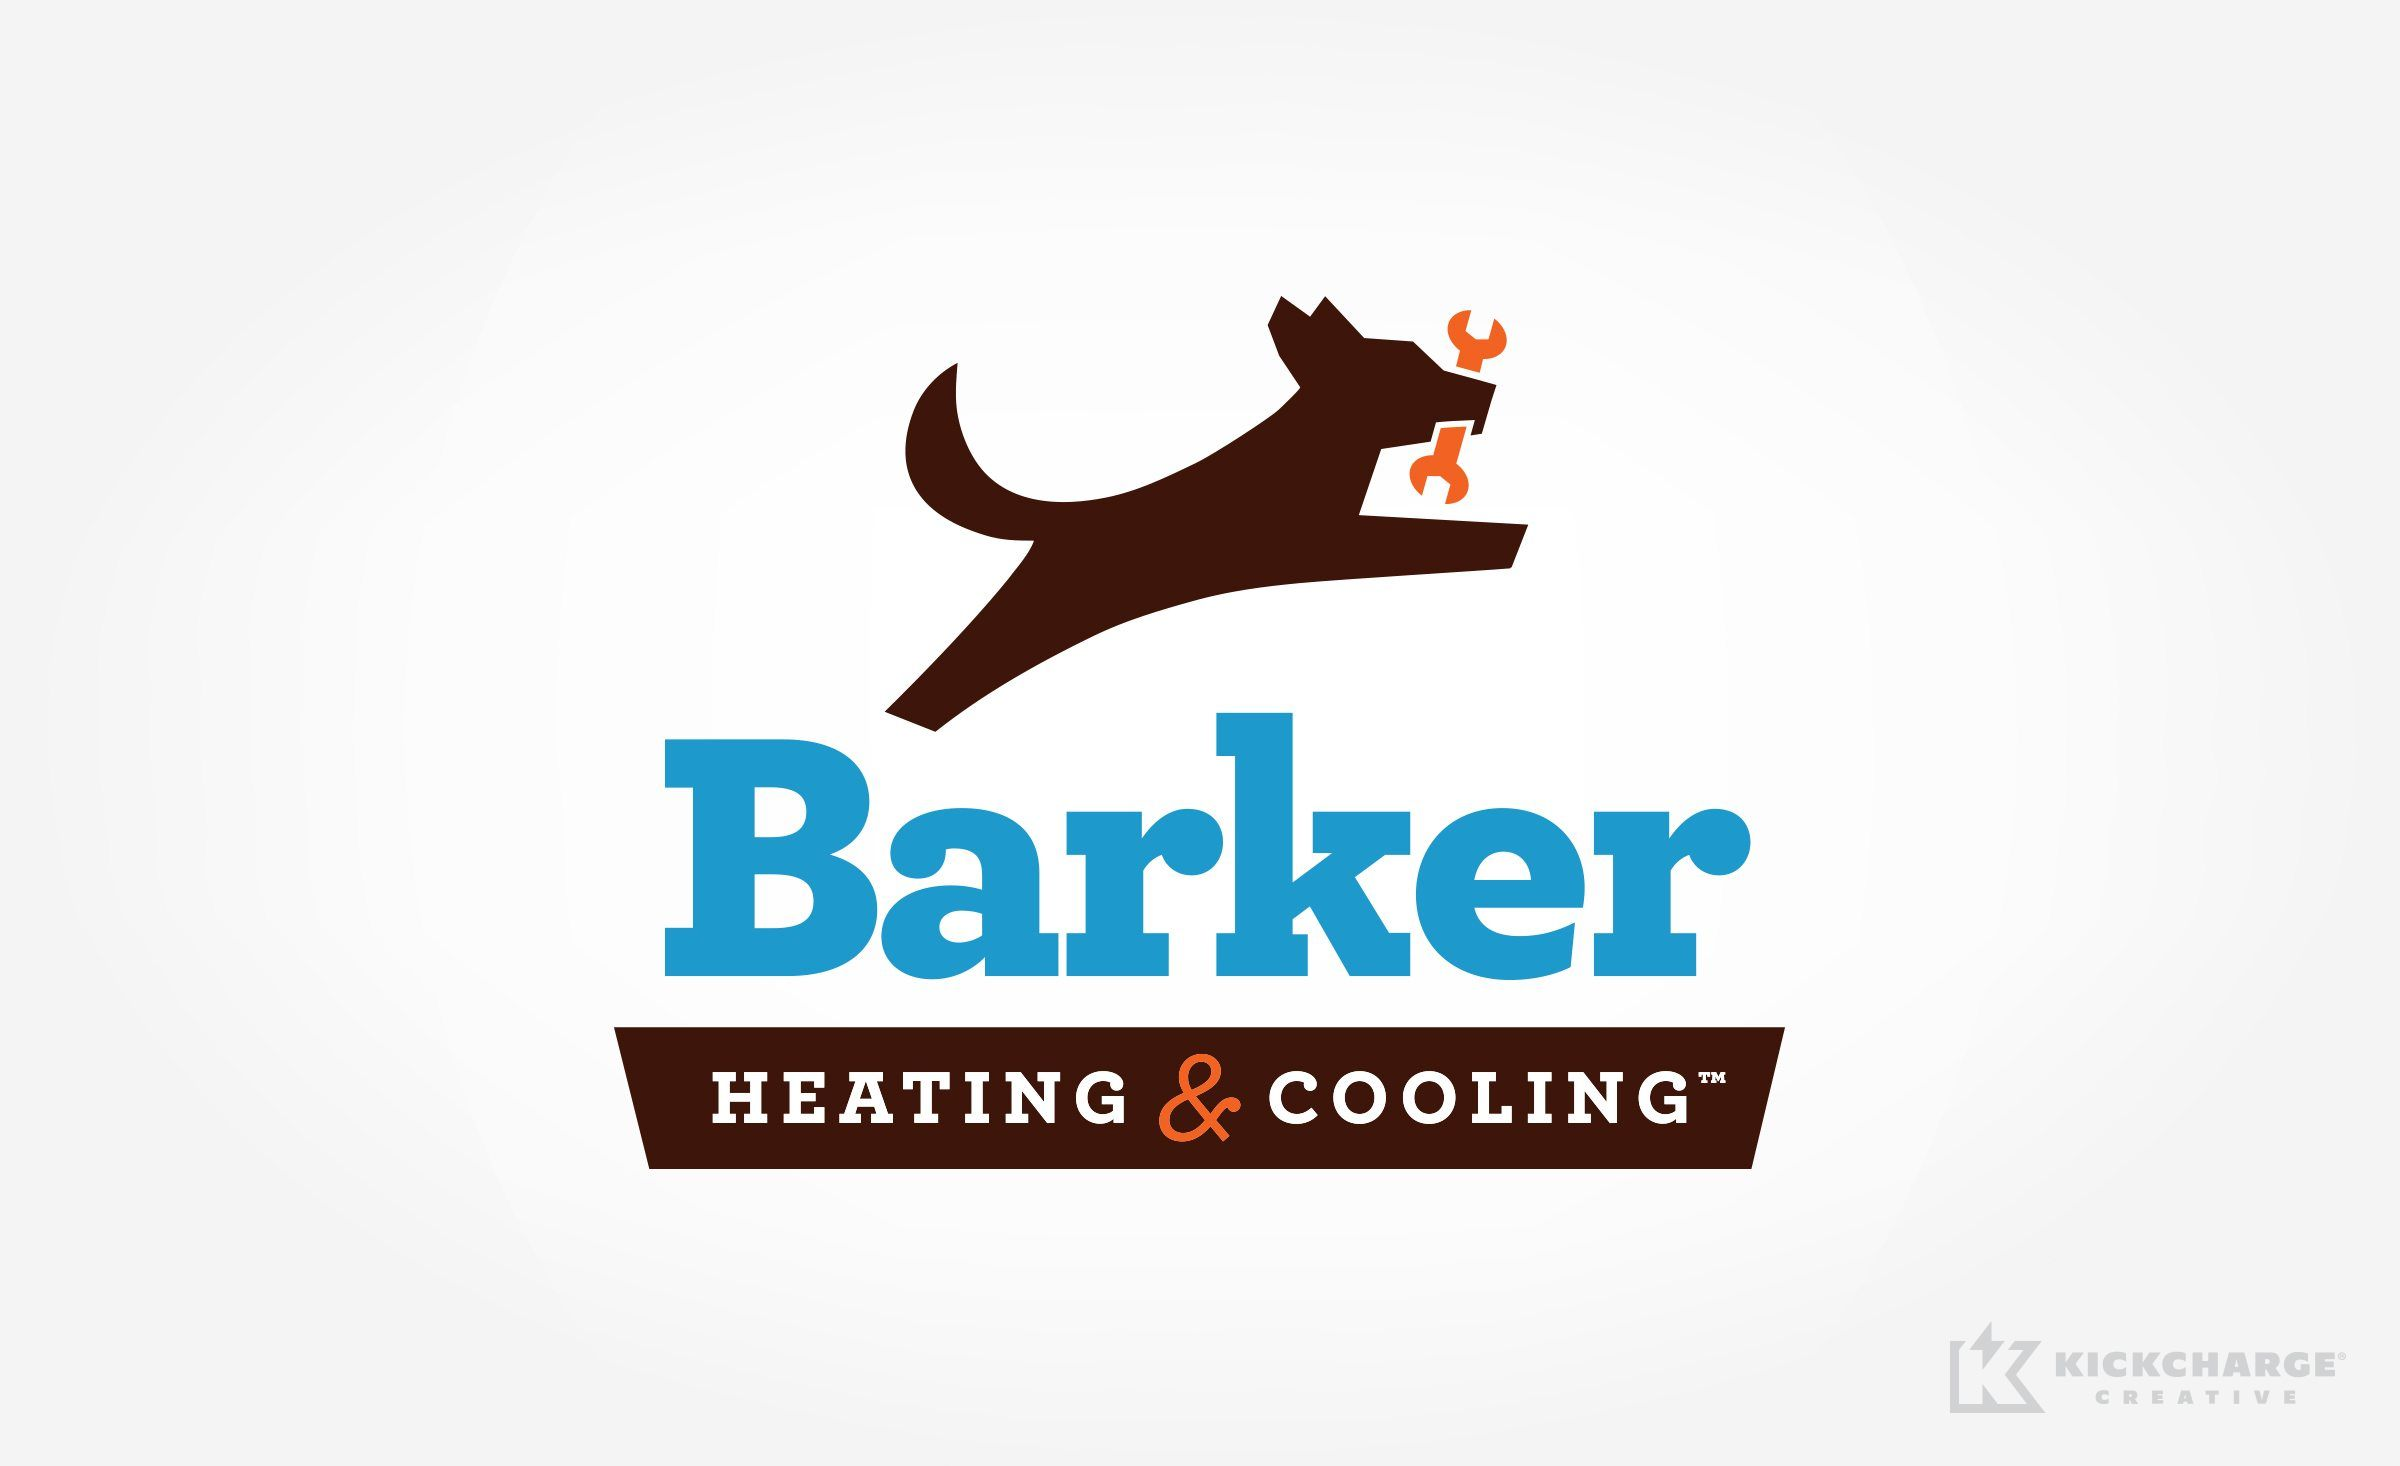 Barker Heating Cooling Kickcharge Creative Small Business